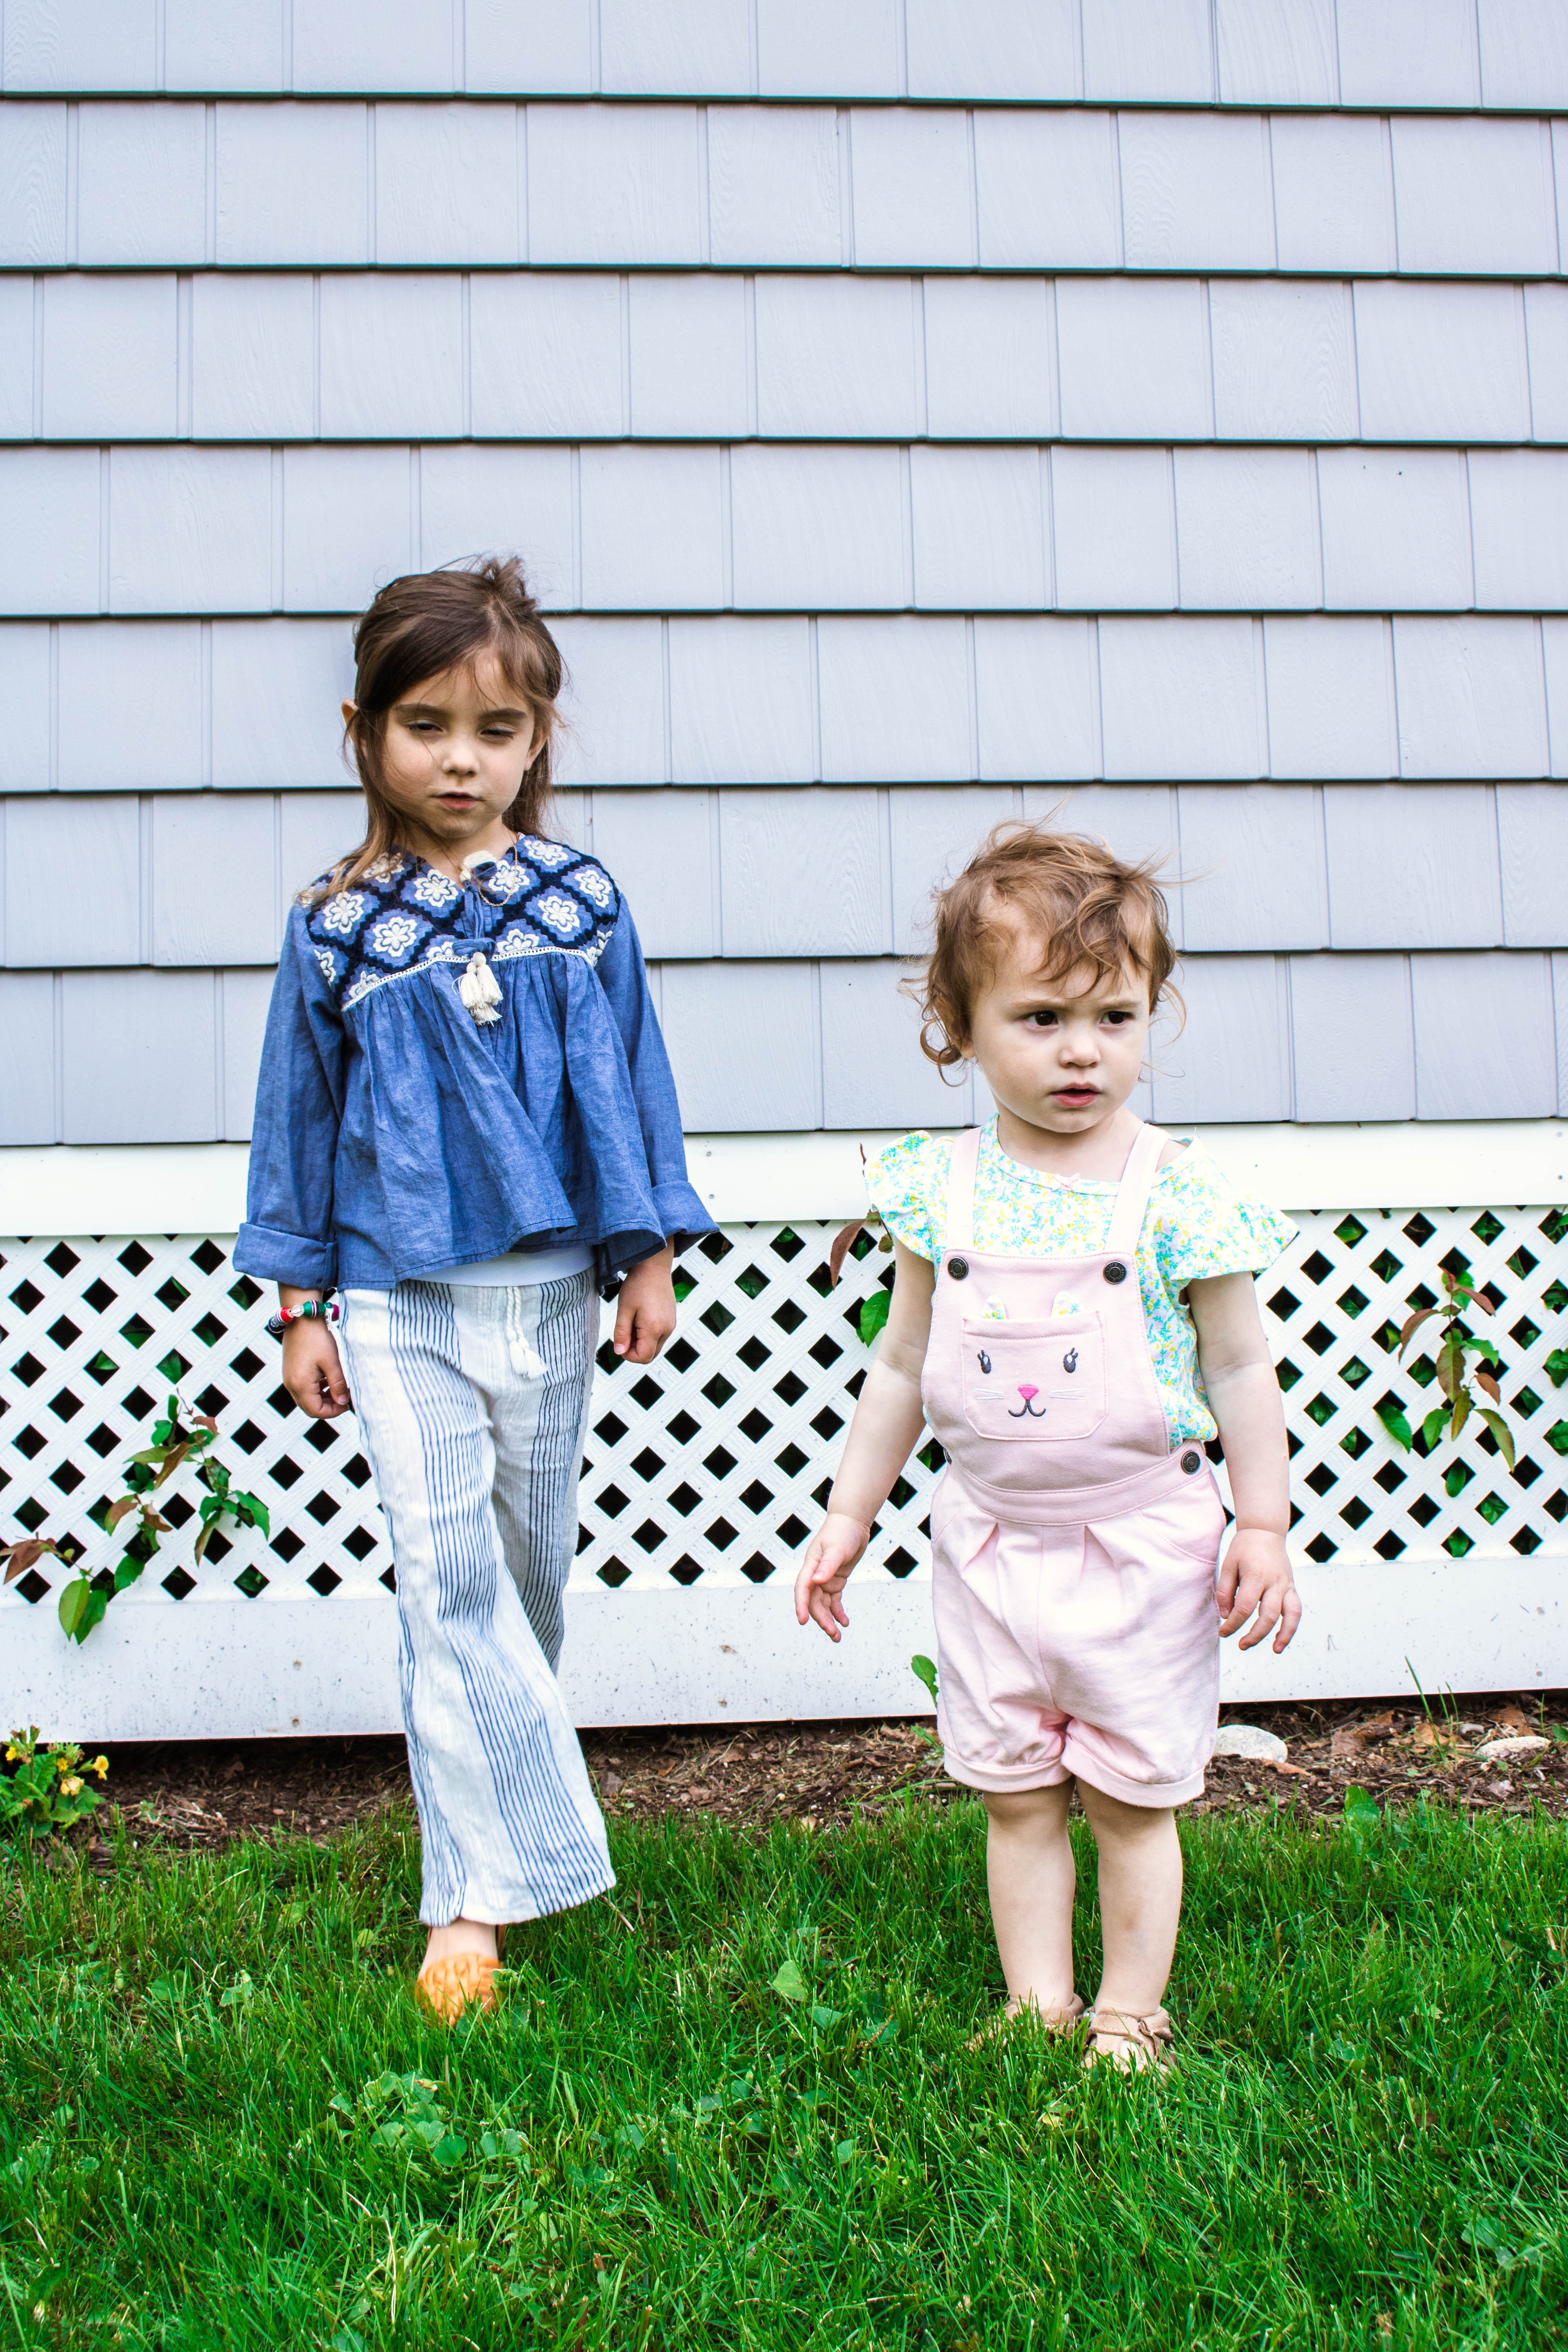 Sisters - Toddlers - Sibling Fights - How To Handle Sister Arguments